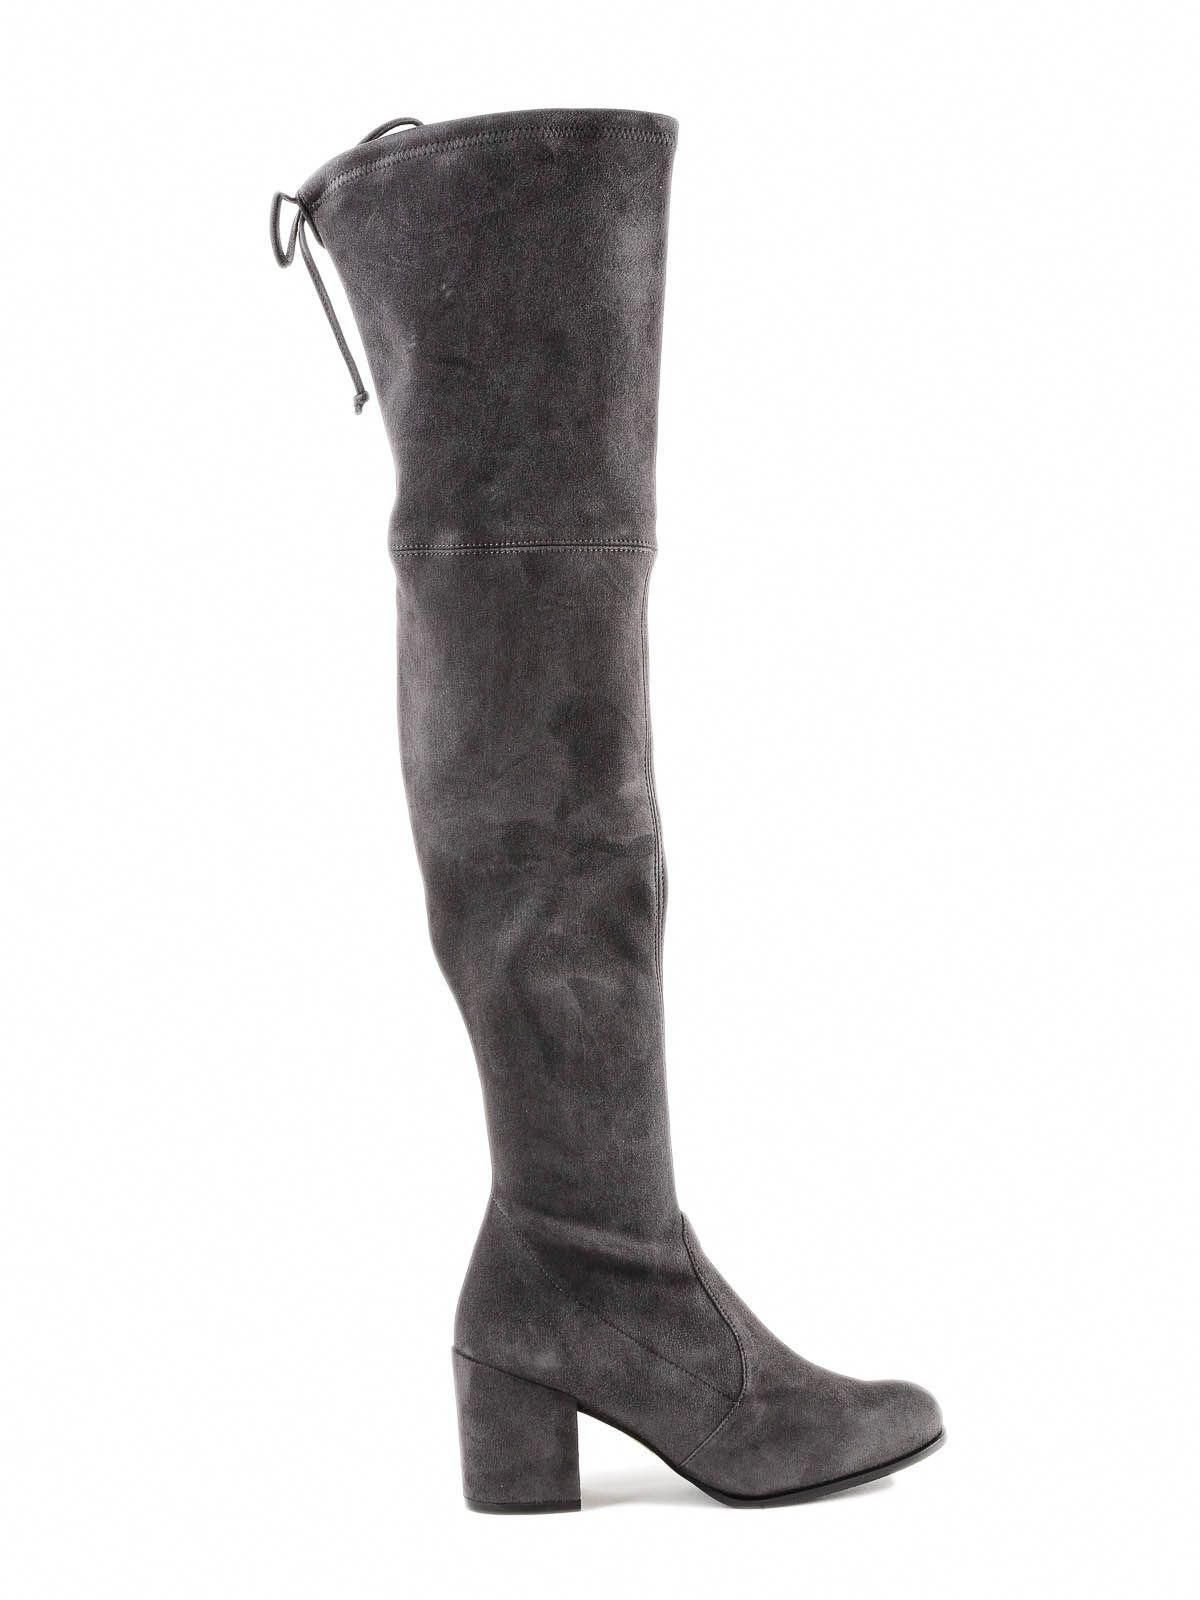 ce3de7542f5 NEW Stuart Weitzman Highland Suede Over the Knee boot Shoes